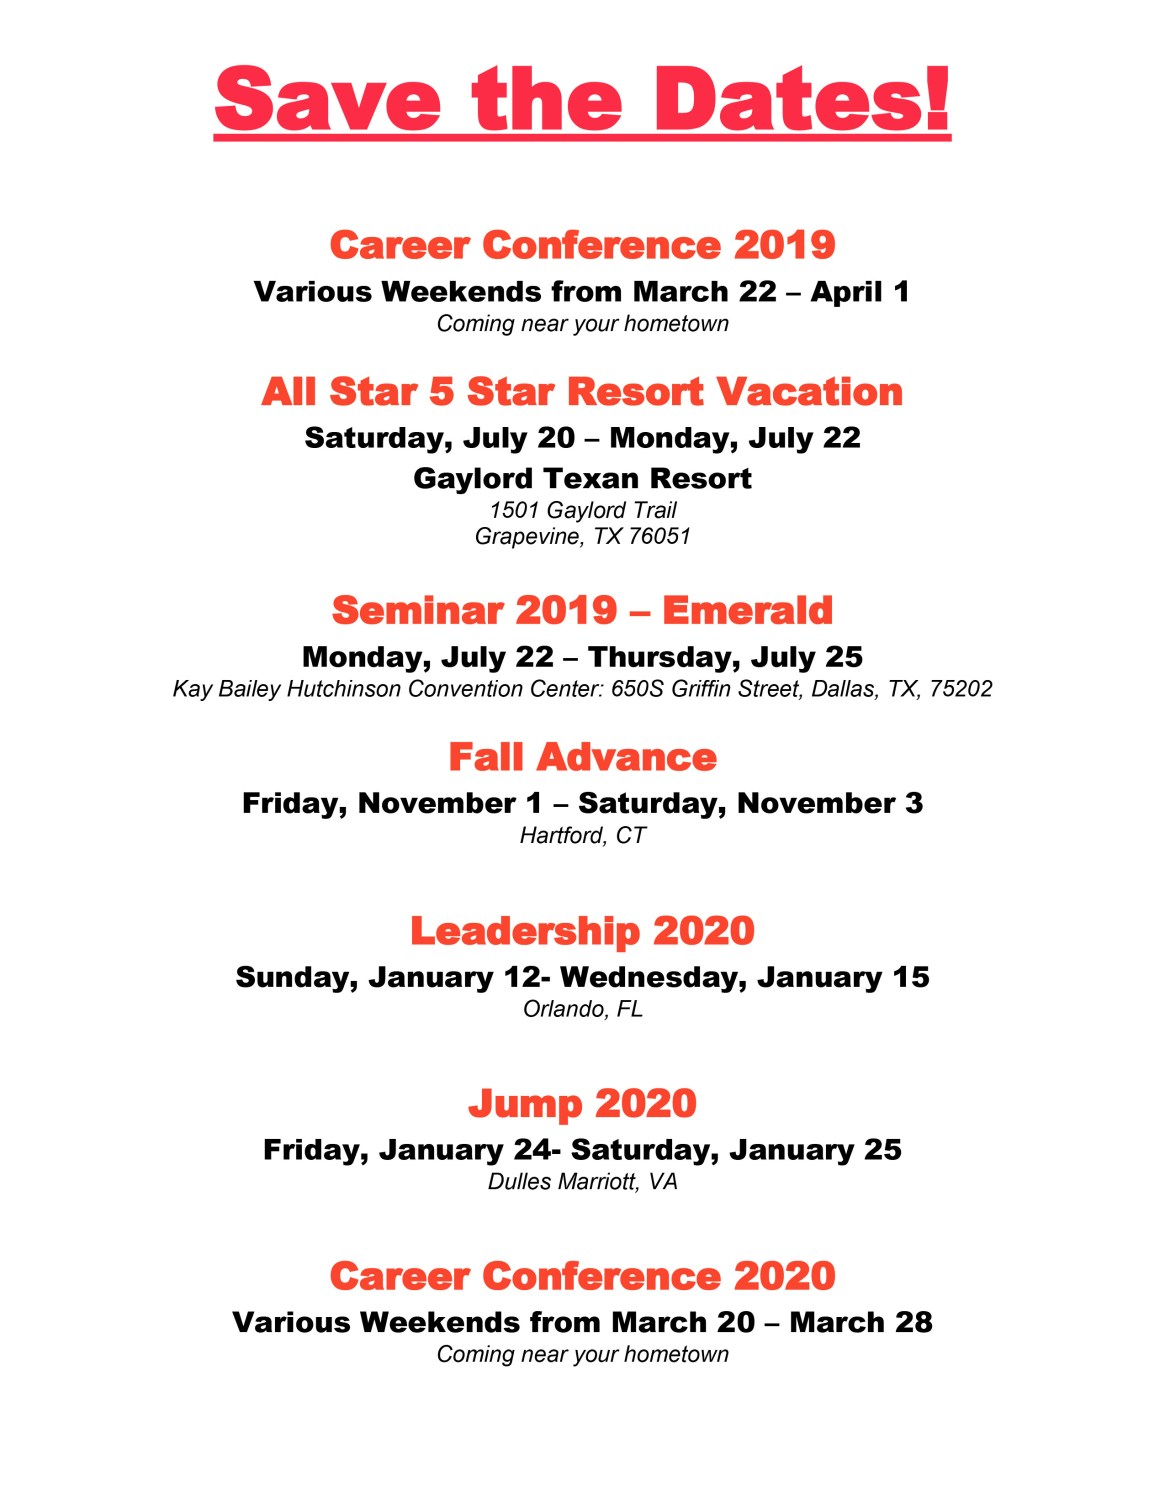 Save the Date for Upcoming Events rev 2-1